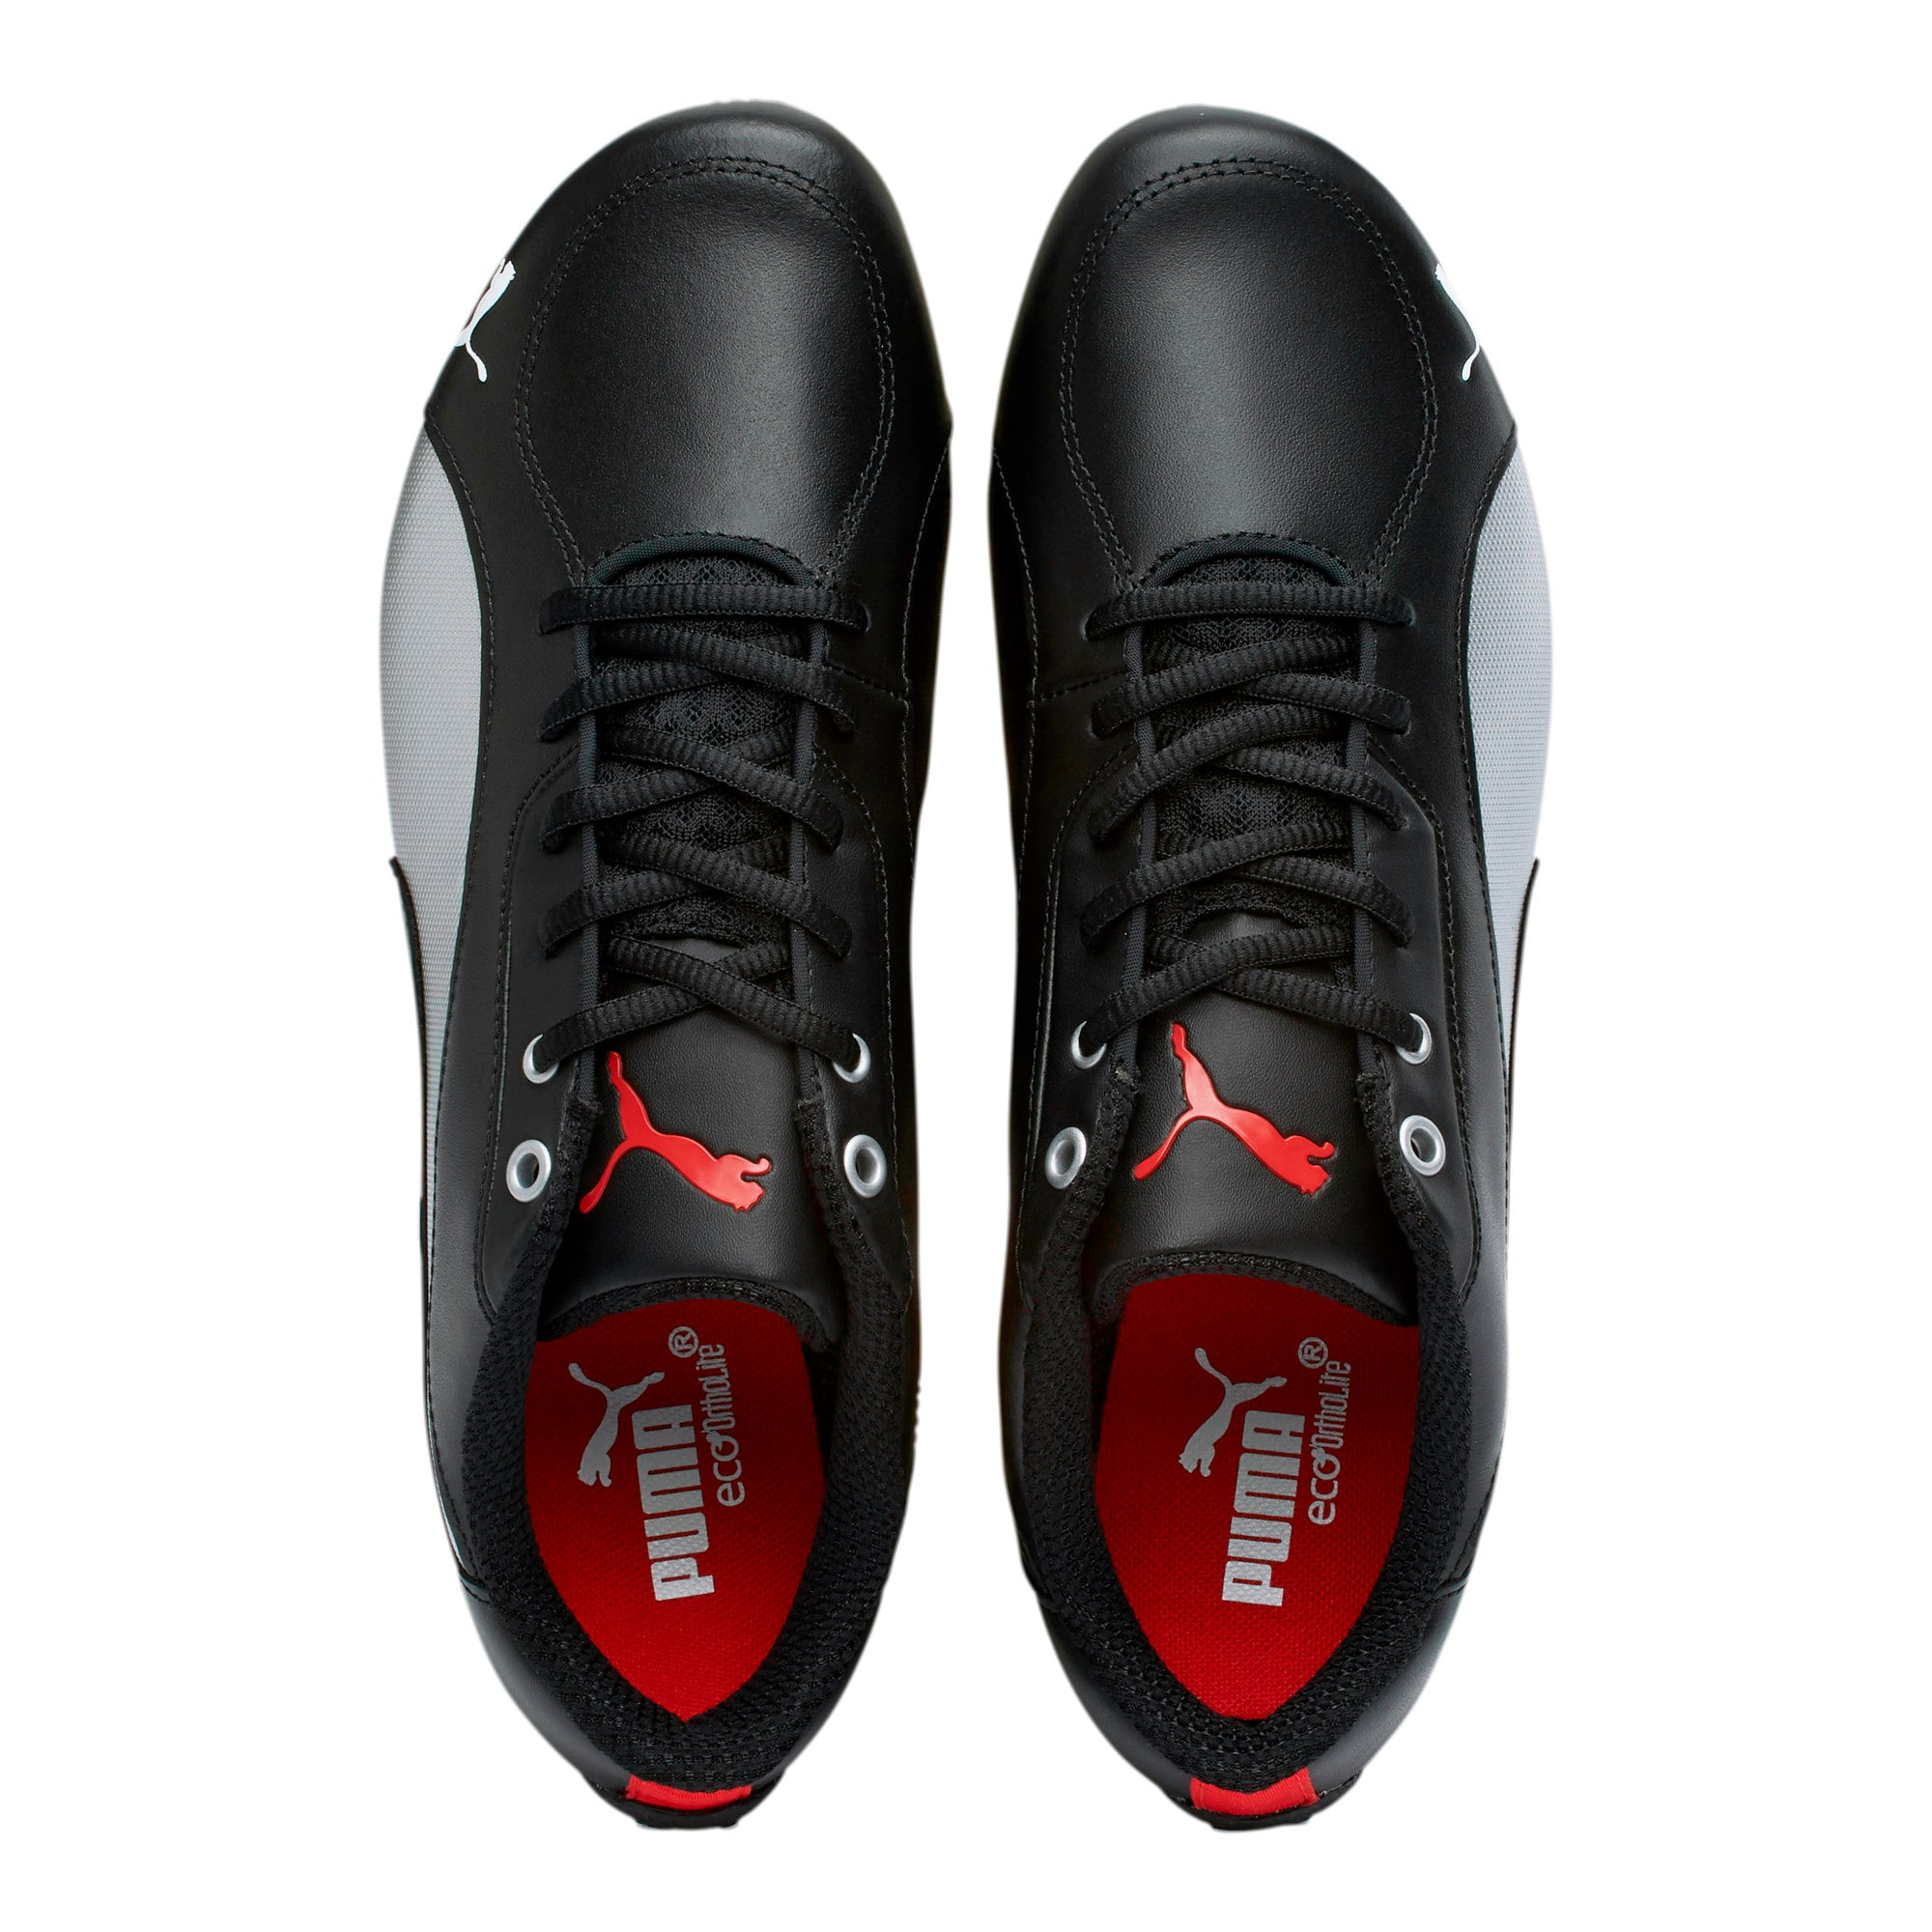 Thumbnail 6 of Scuderia Ferrari Drift Cat 5 NM Men's Shoes, Puma Black-Puma Black, medium